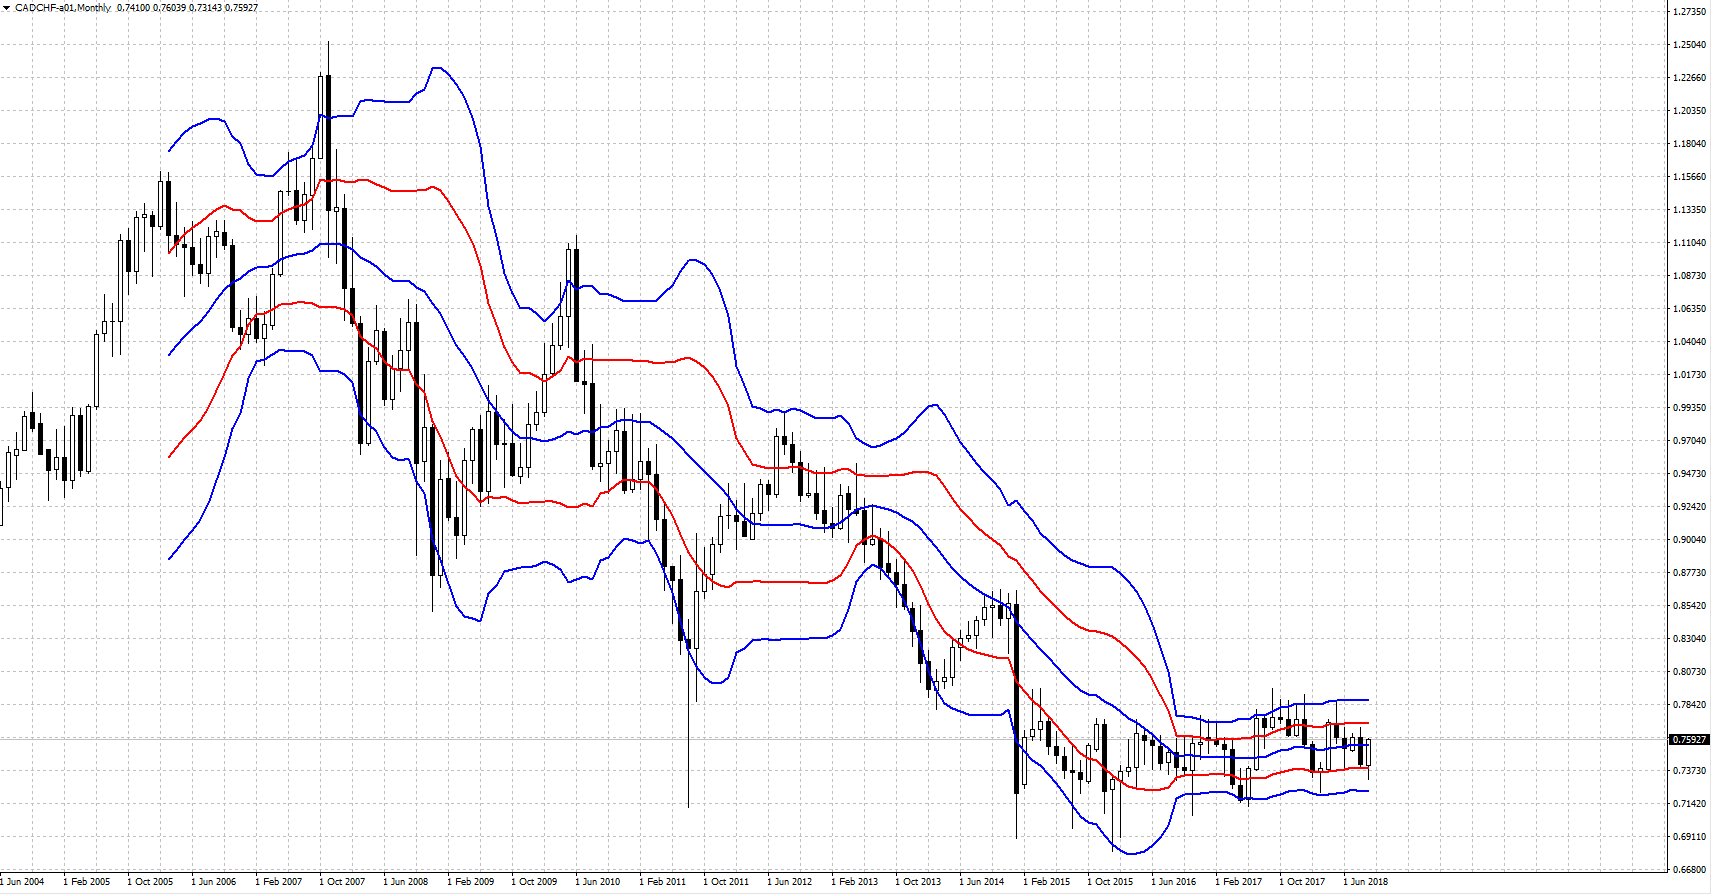 CADCHF-201809.png